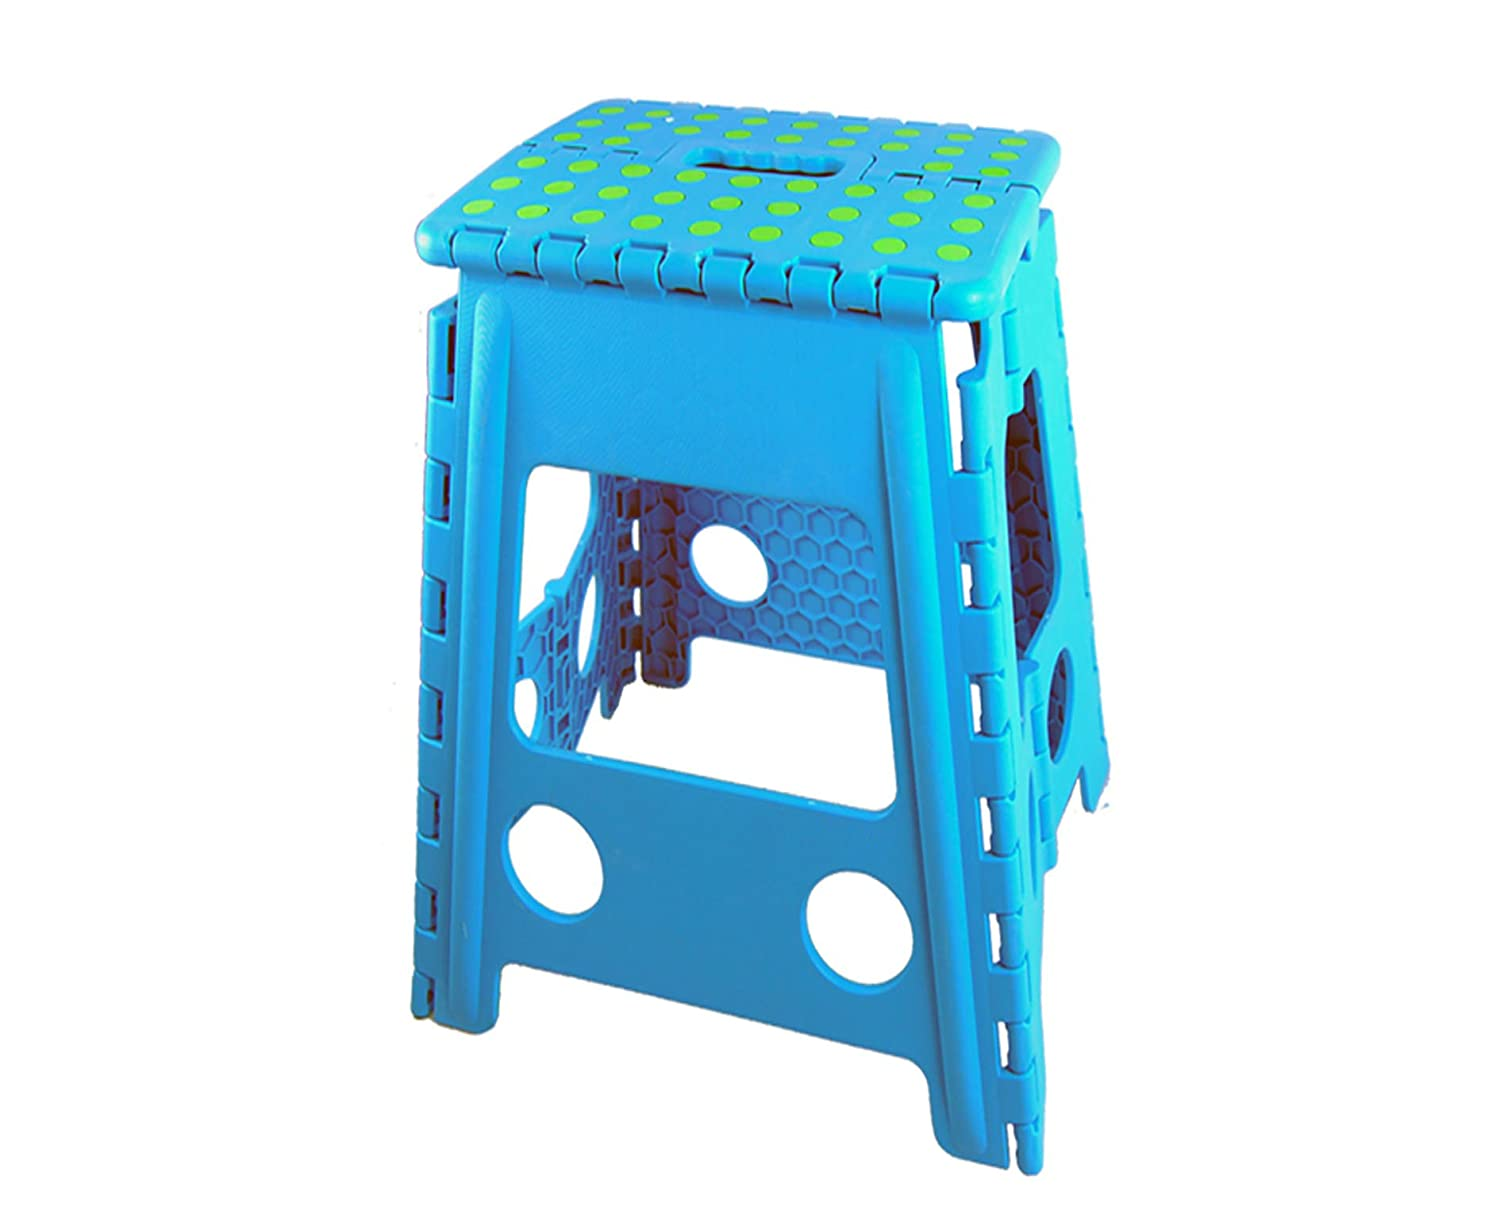 sc 1 st  Amazon UK & Tall Folding Step Stool: Amazon.co.uk: Kitchen u0026 Home islam-shia.org